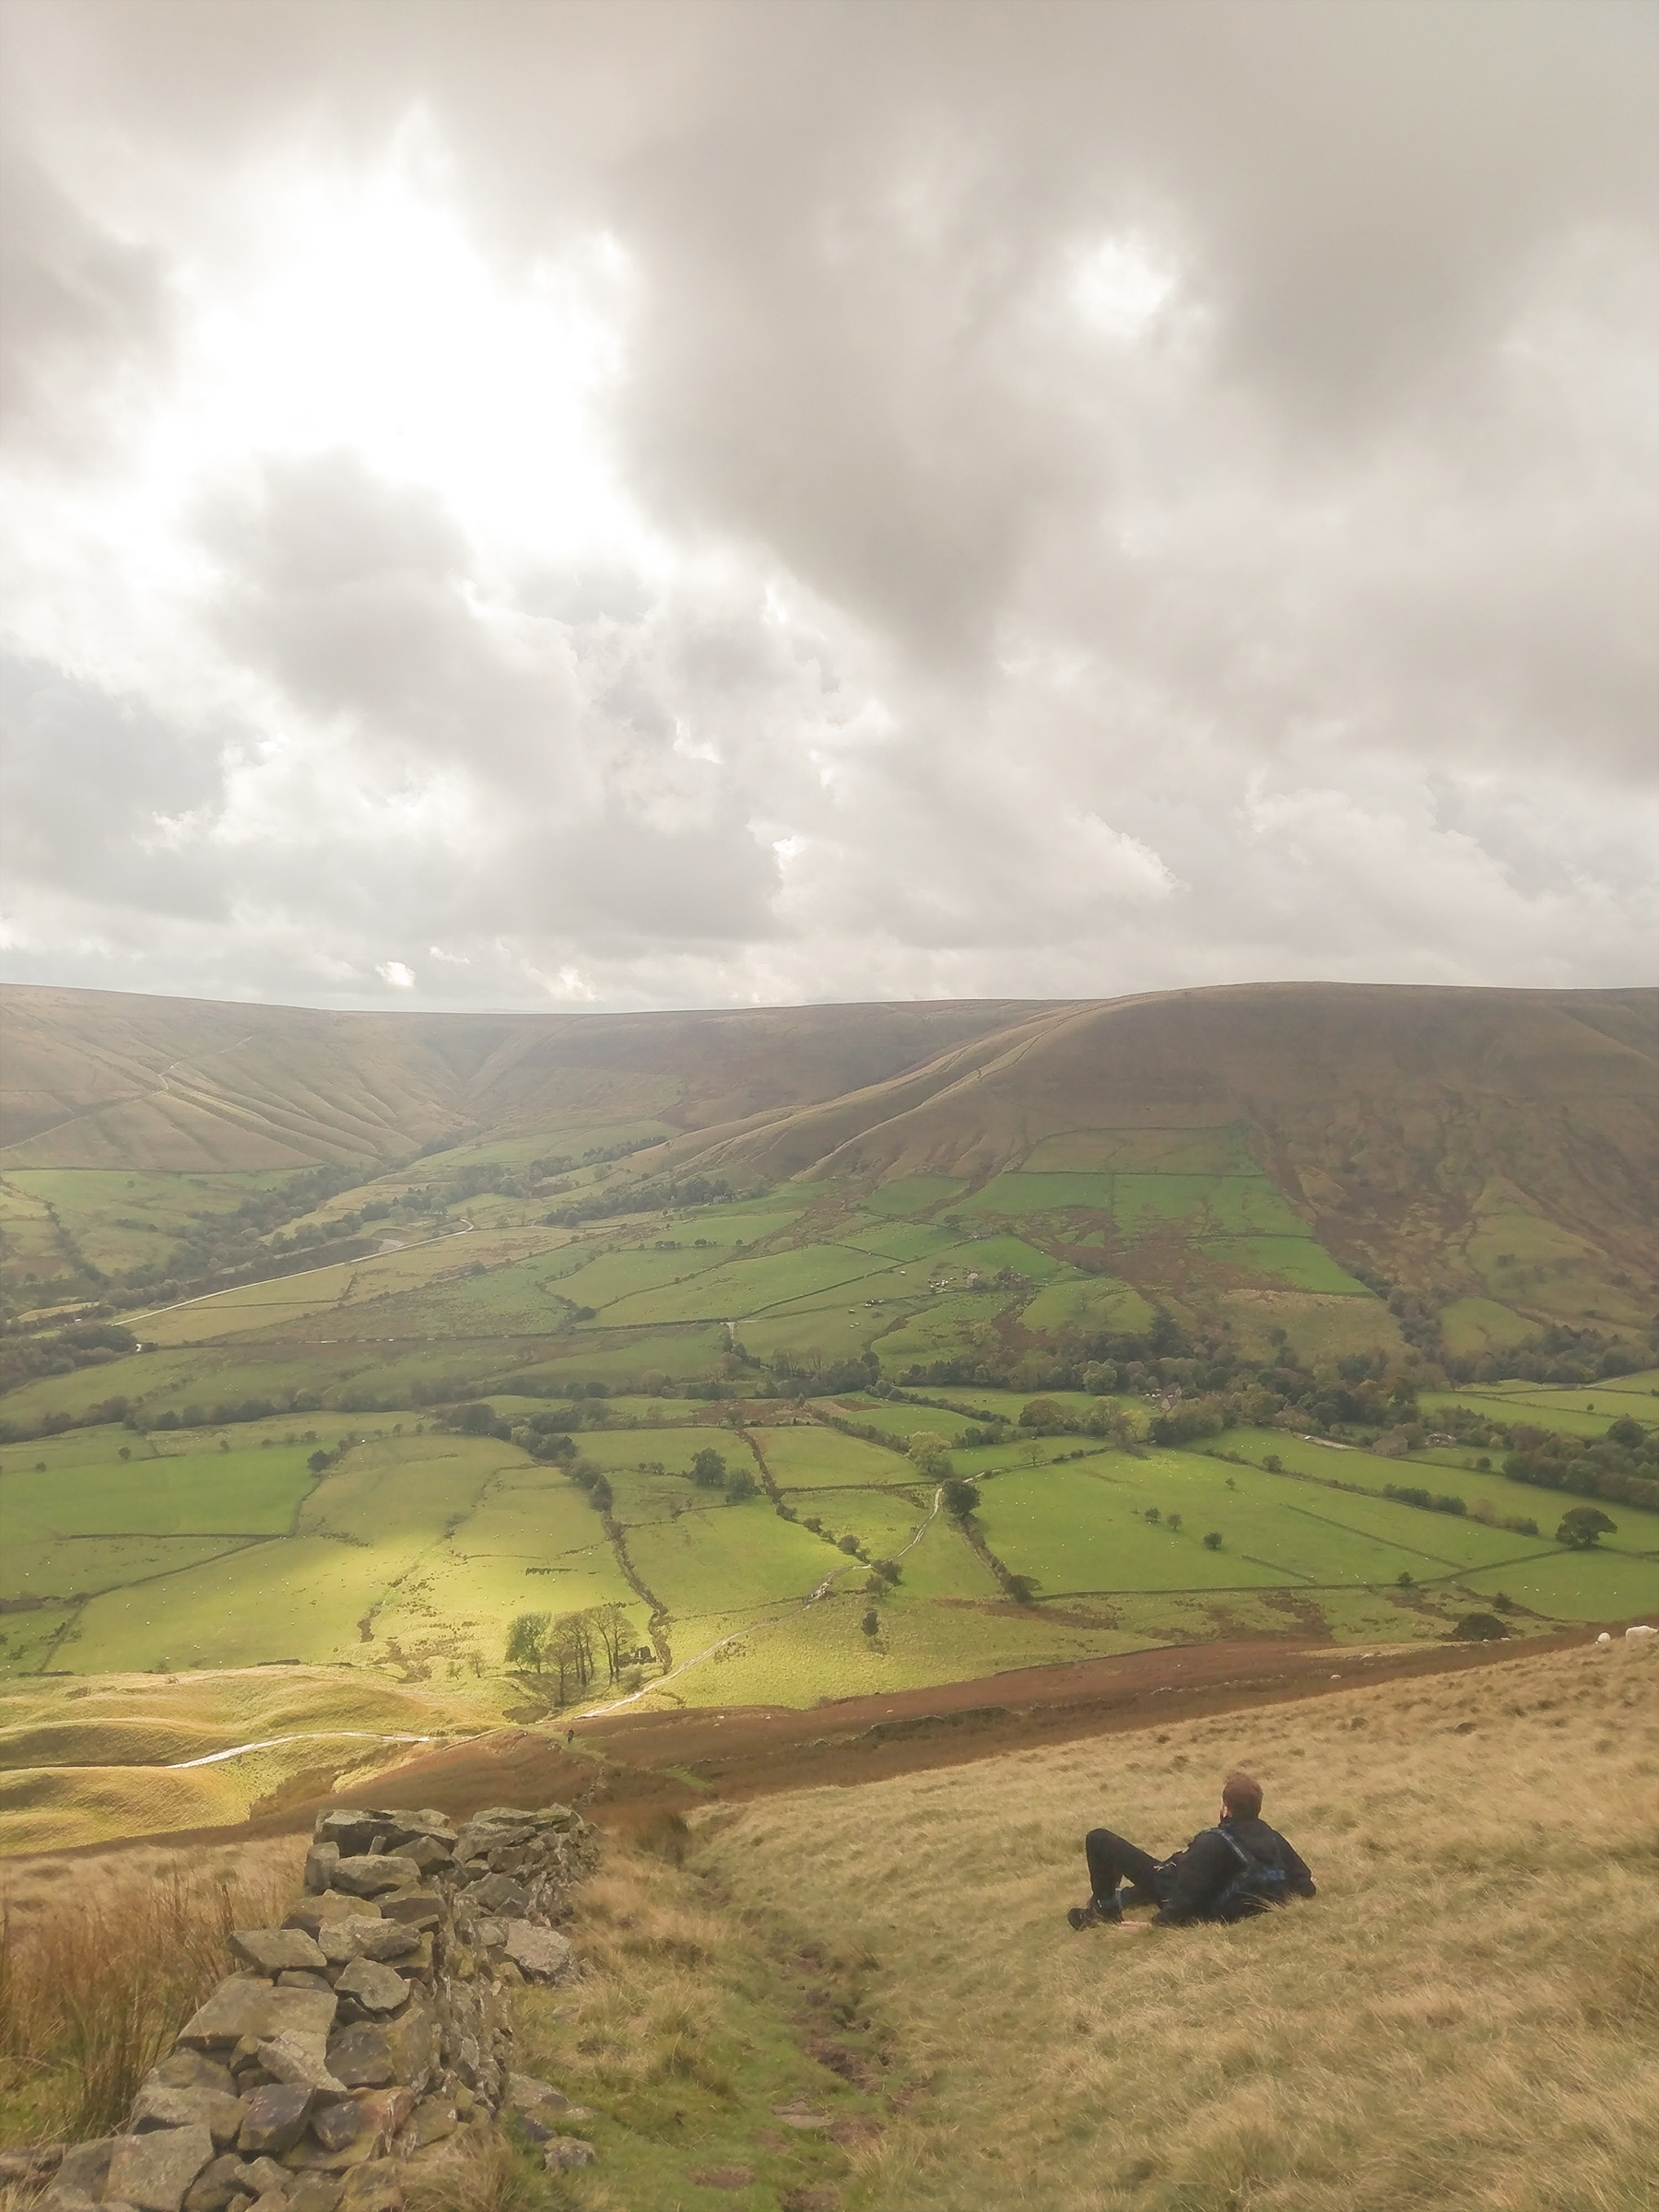 Climbing Kinder Scout - Edale, Peak District